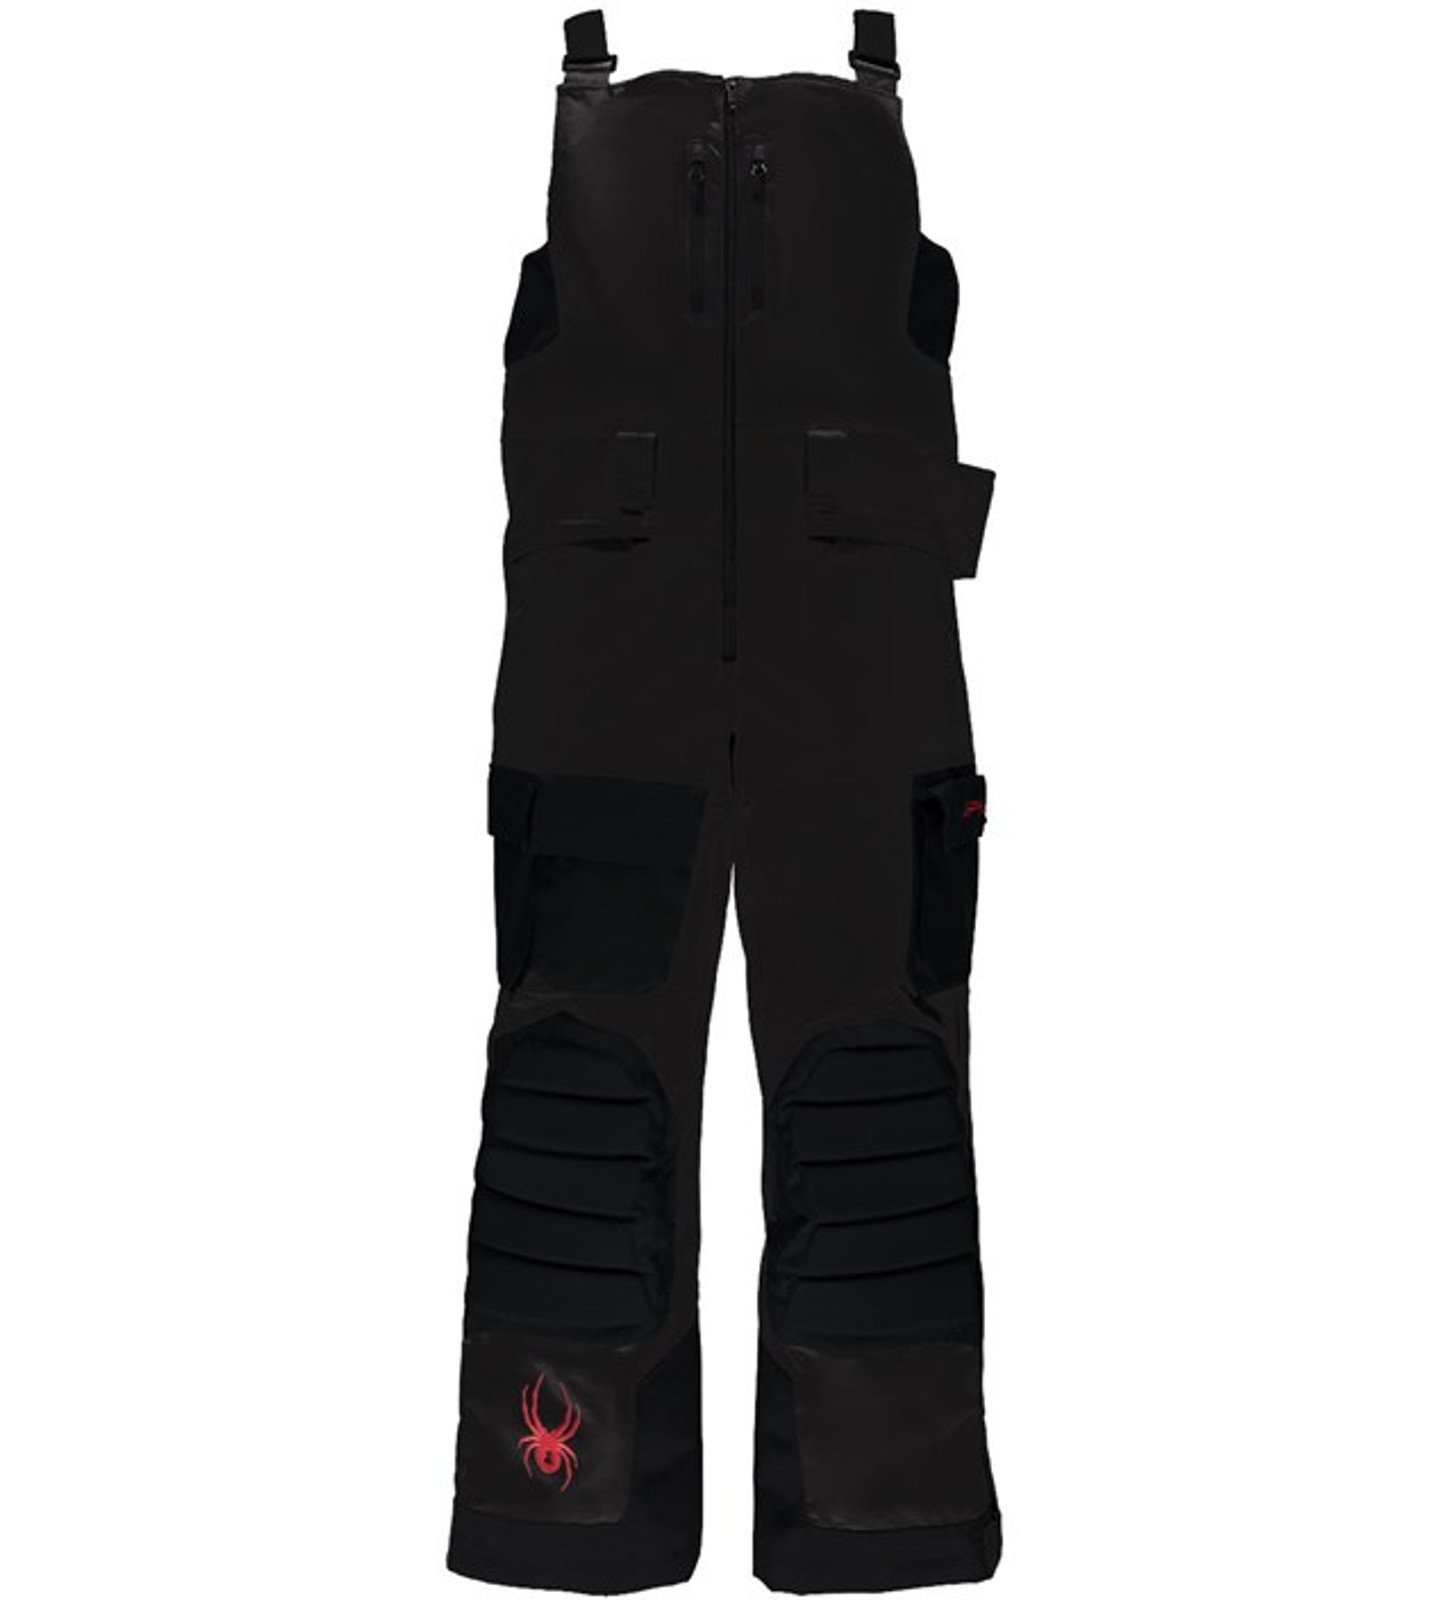 Spyder Coaches Bib Ski Pants